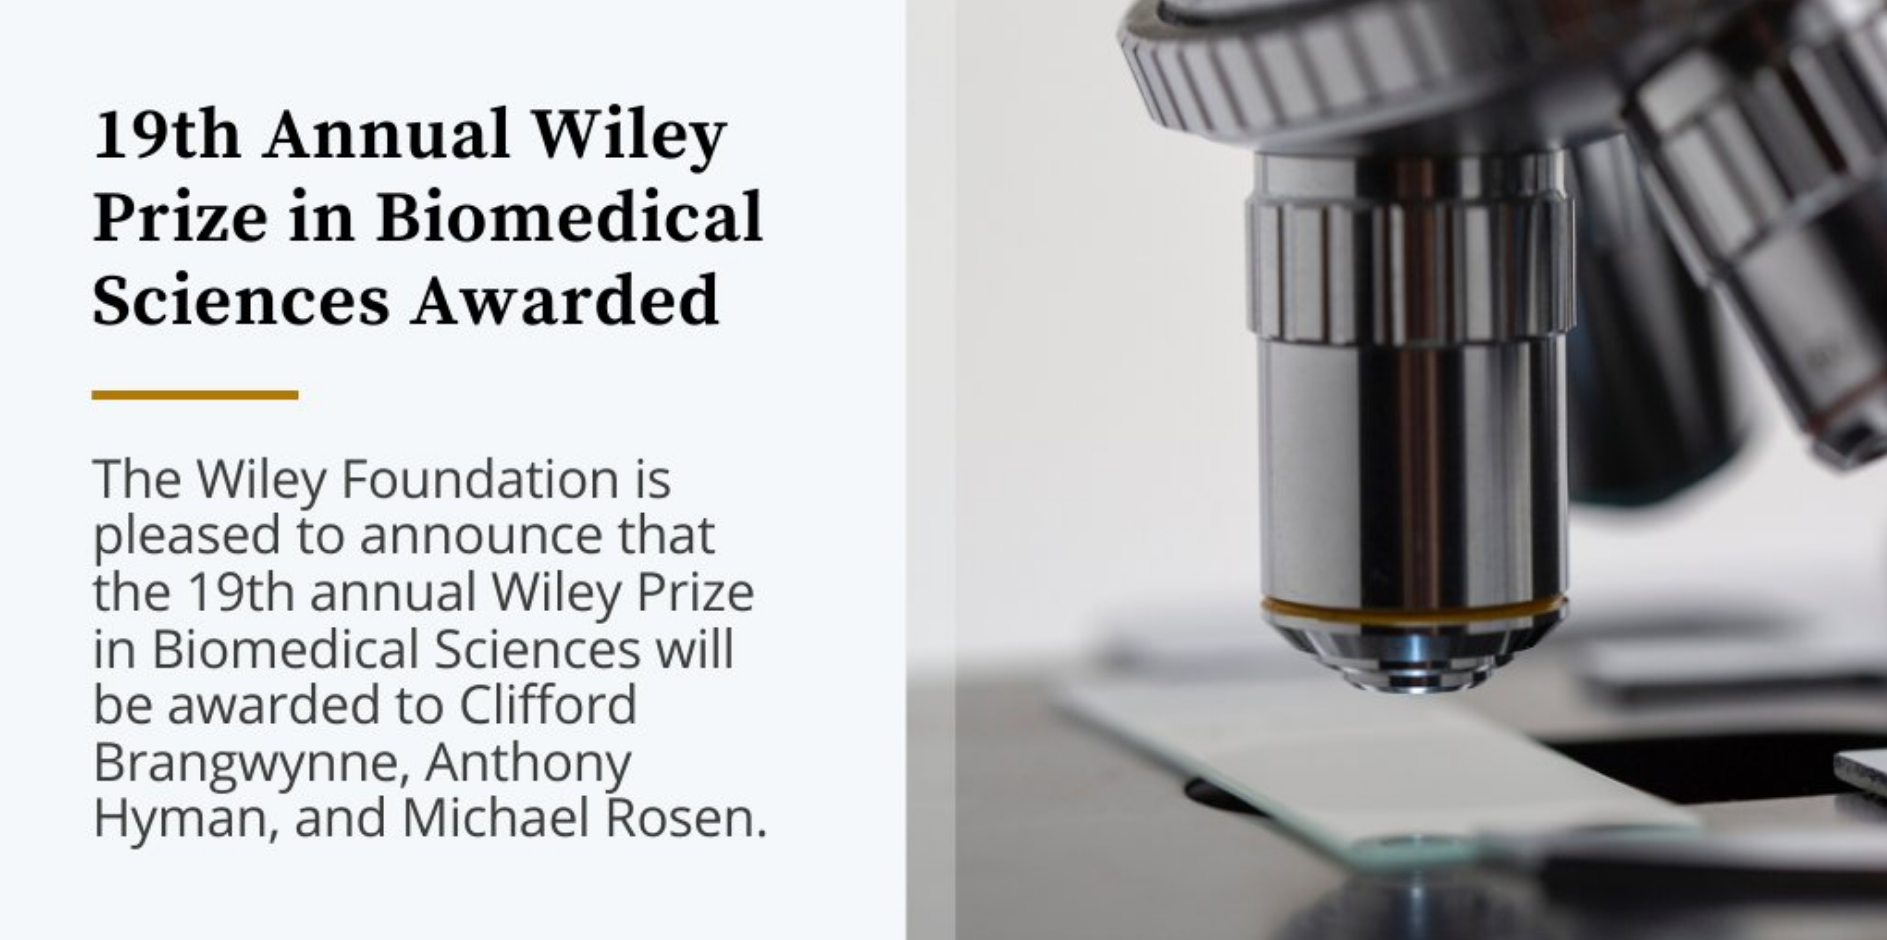 Tony receives 2020 Wiley Prize in Biomolecular Sciences